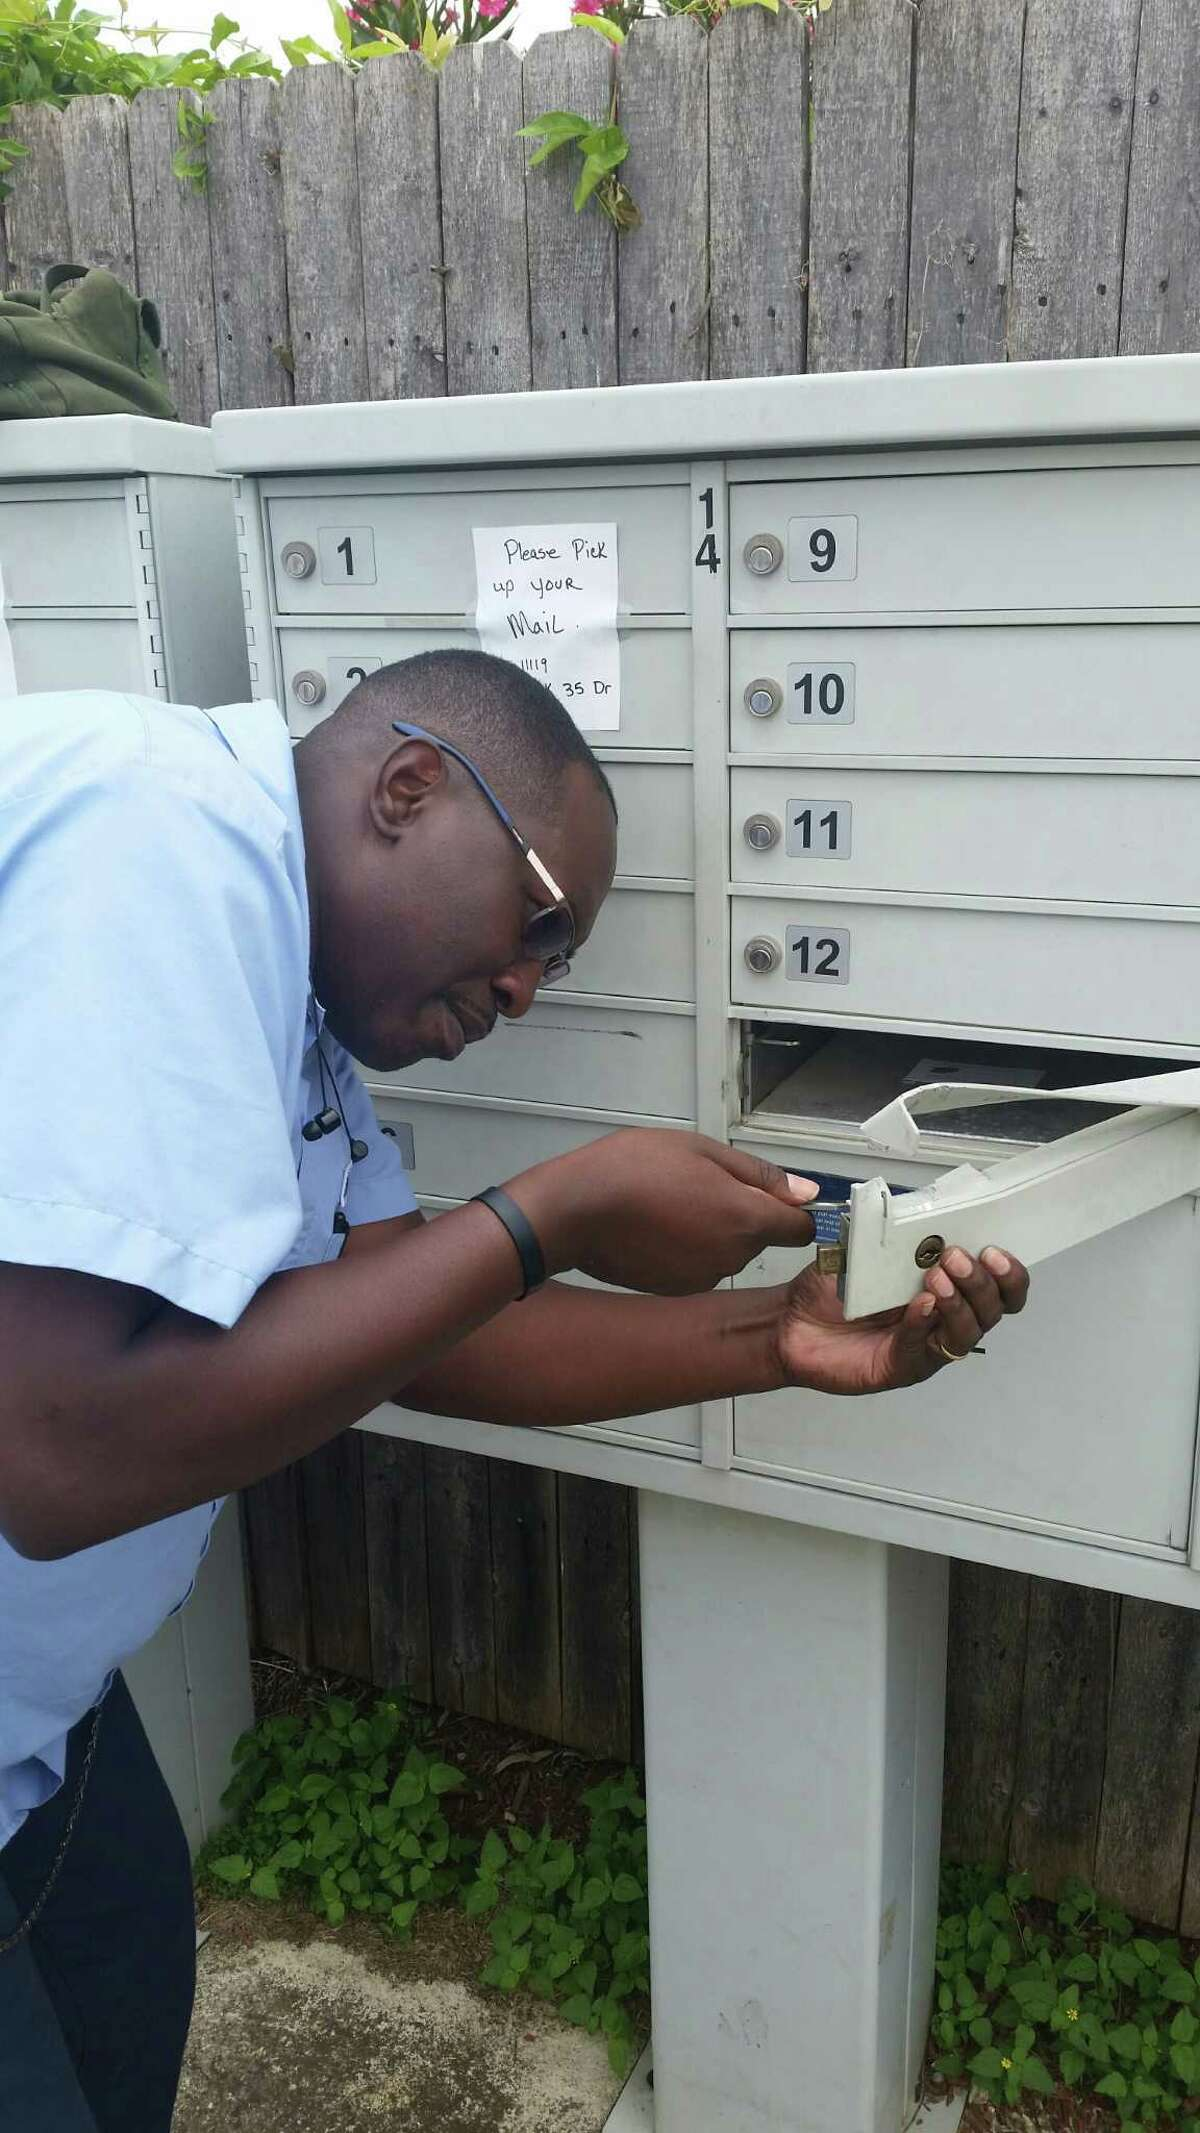 Postal employee Jerrod Williams repairs mailboxes in a San Antonio neighborhood that were broken into recently. The U.S. Postal Service said mail theft appears to be increasing.